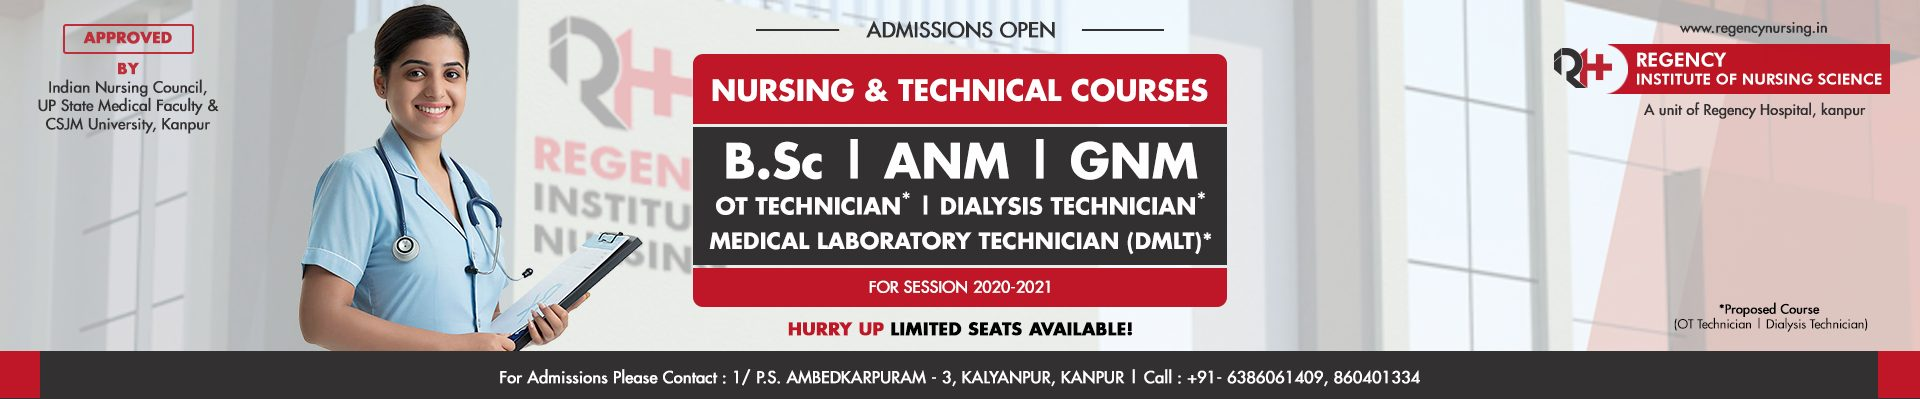 Nursing and Technical Courses admissions opne